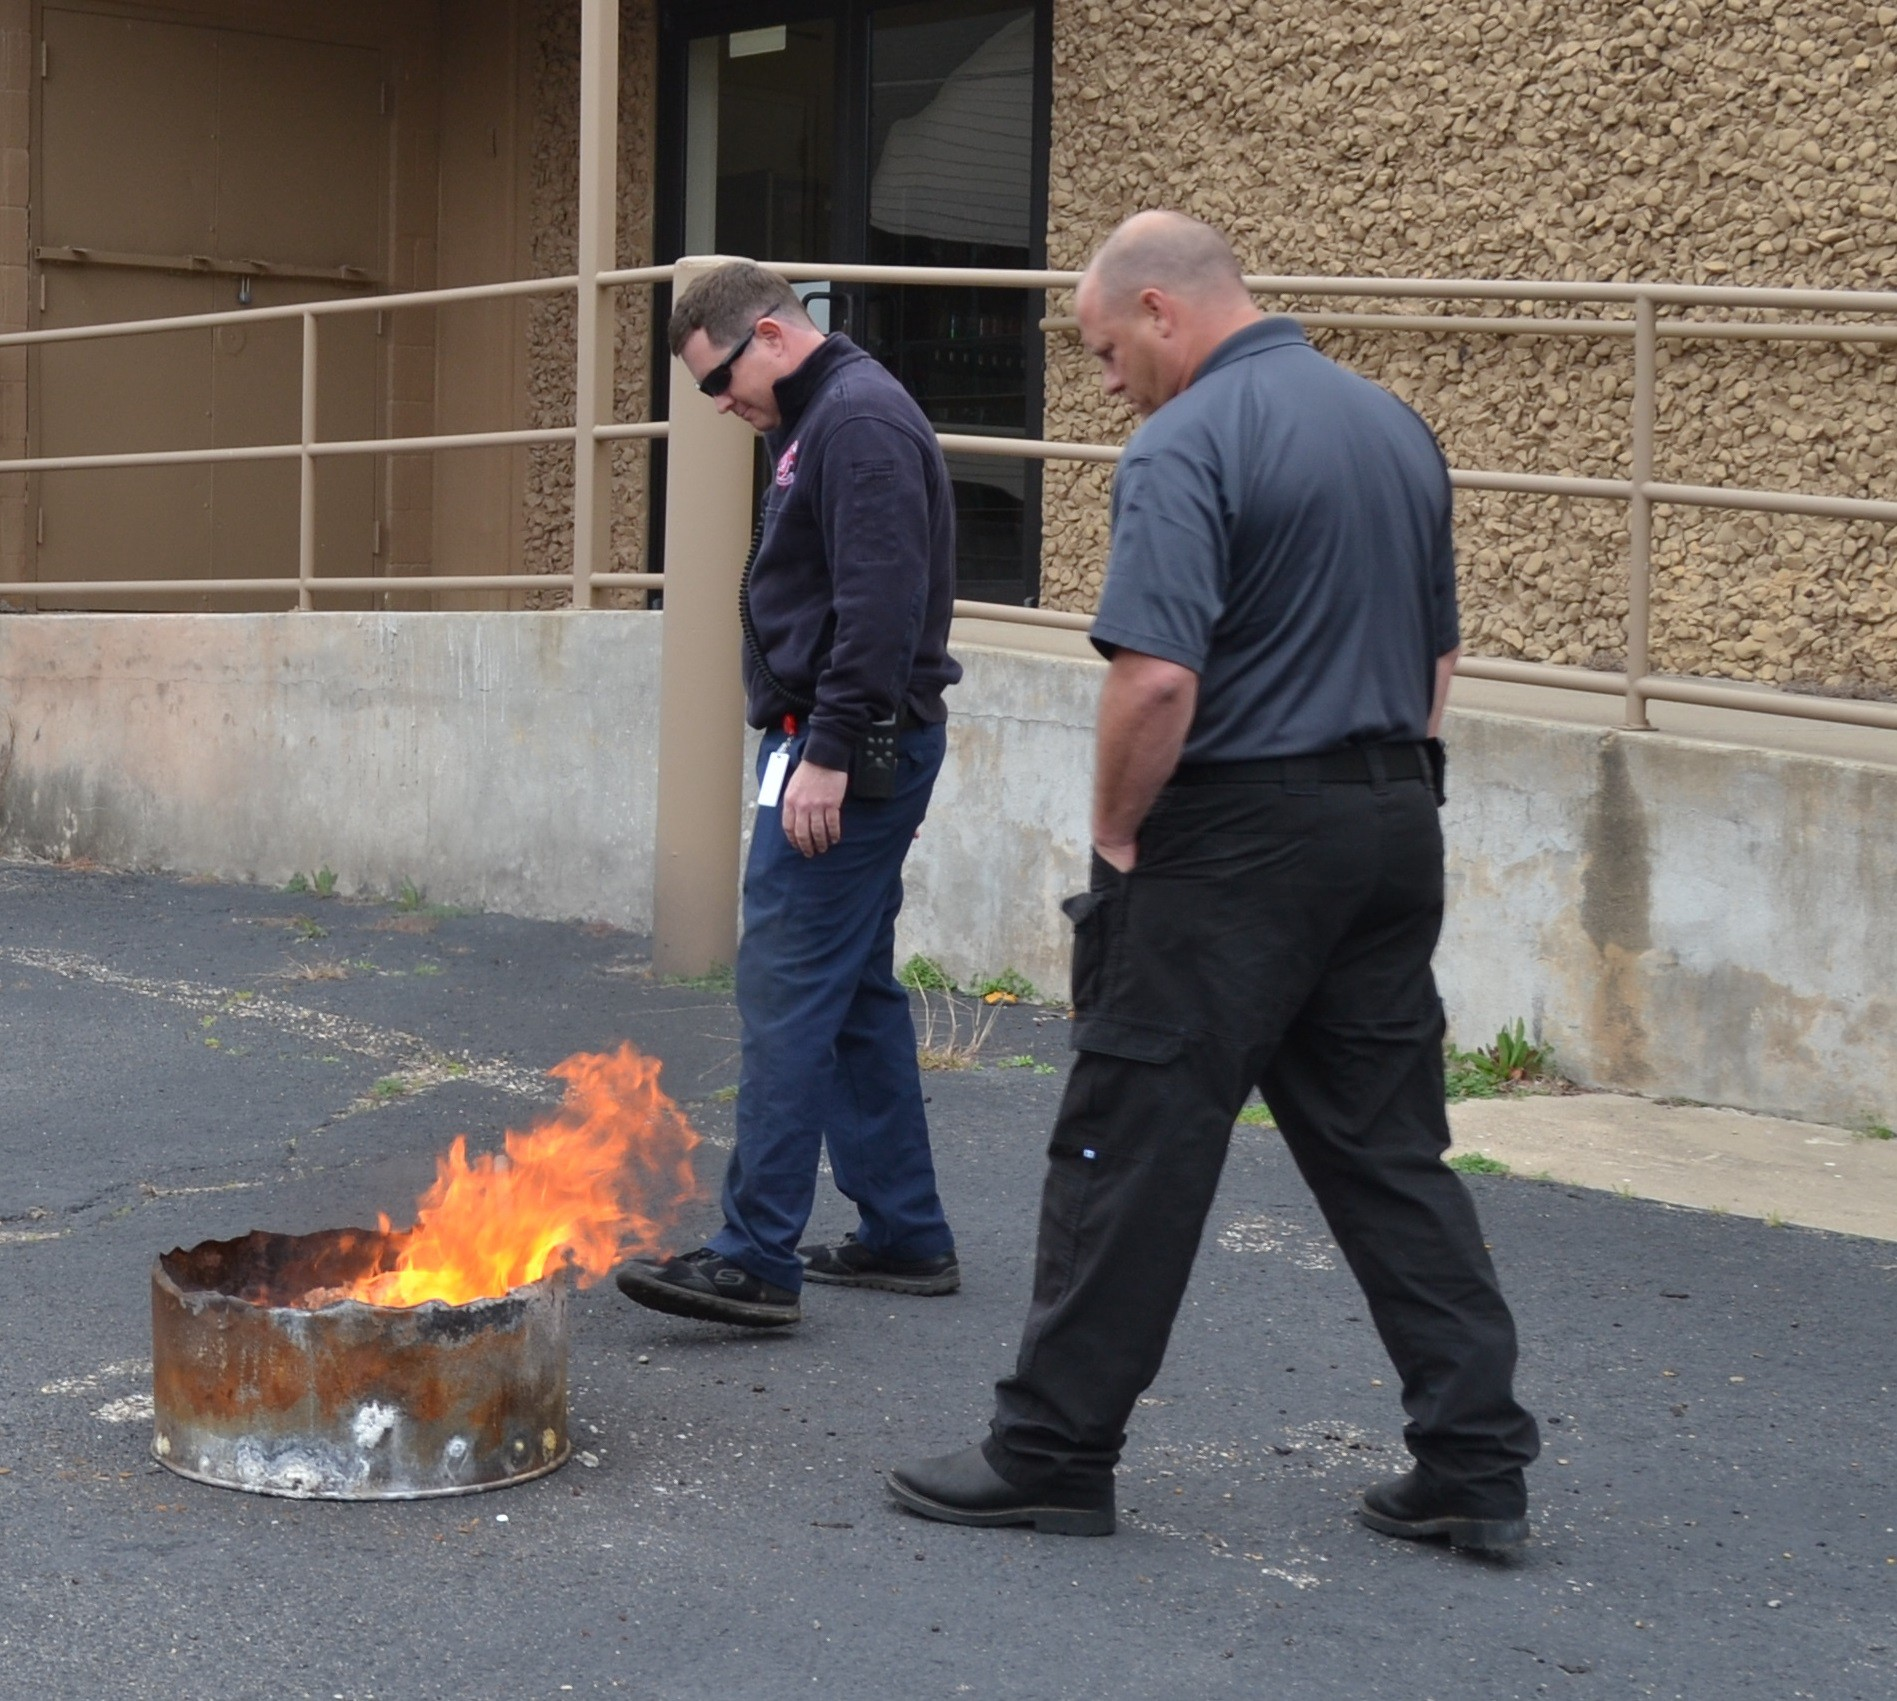 Firefighters know how to extinguish a fire